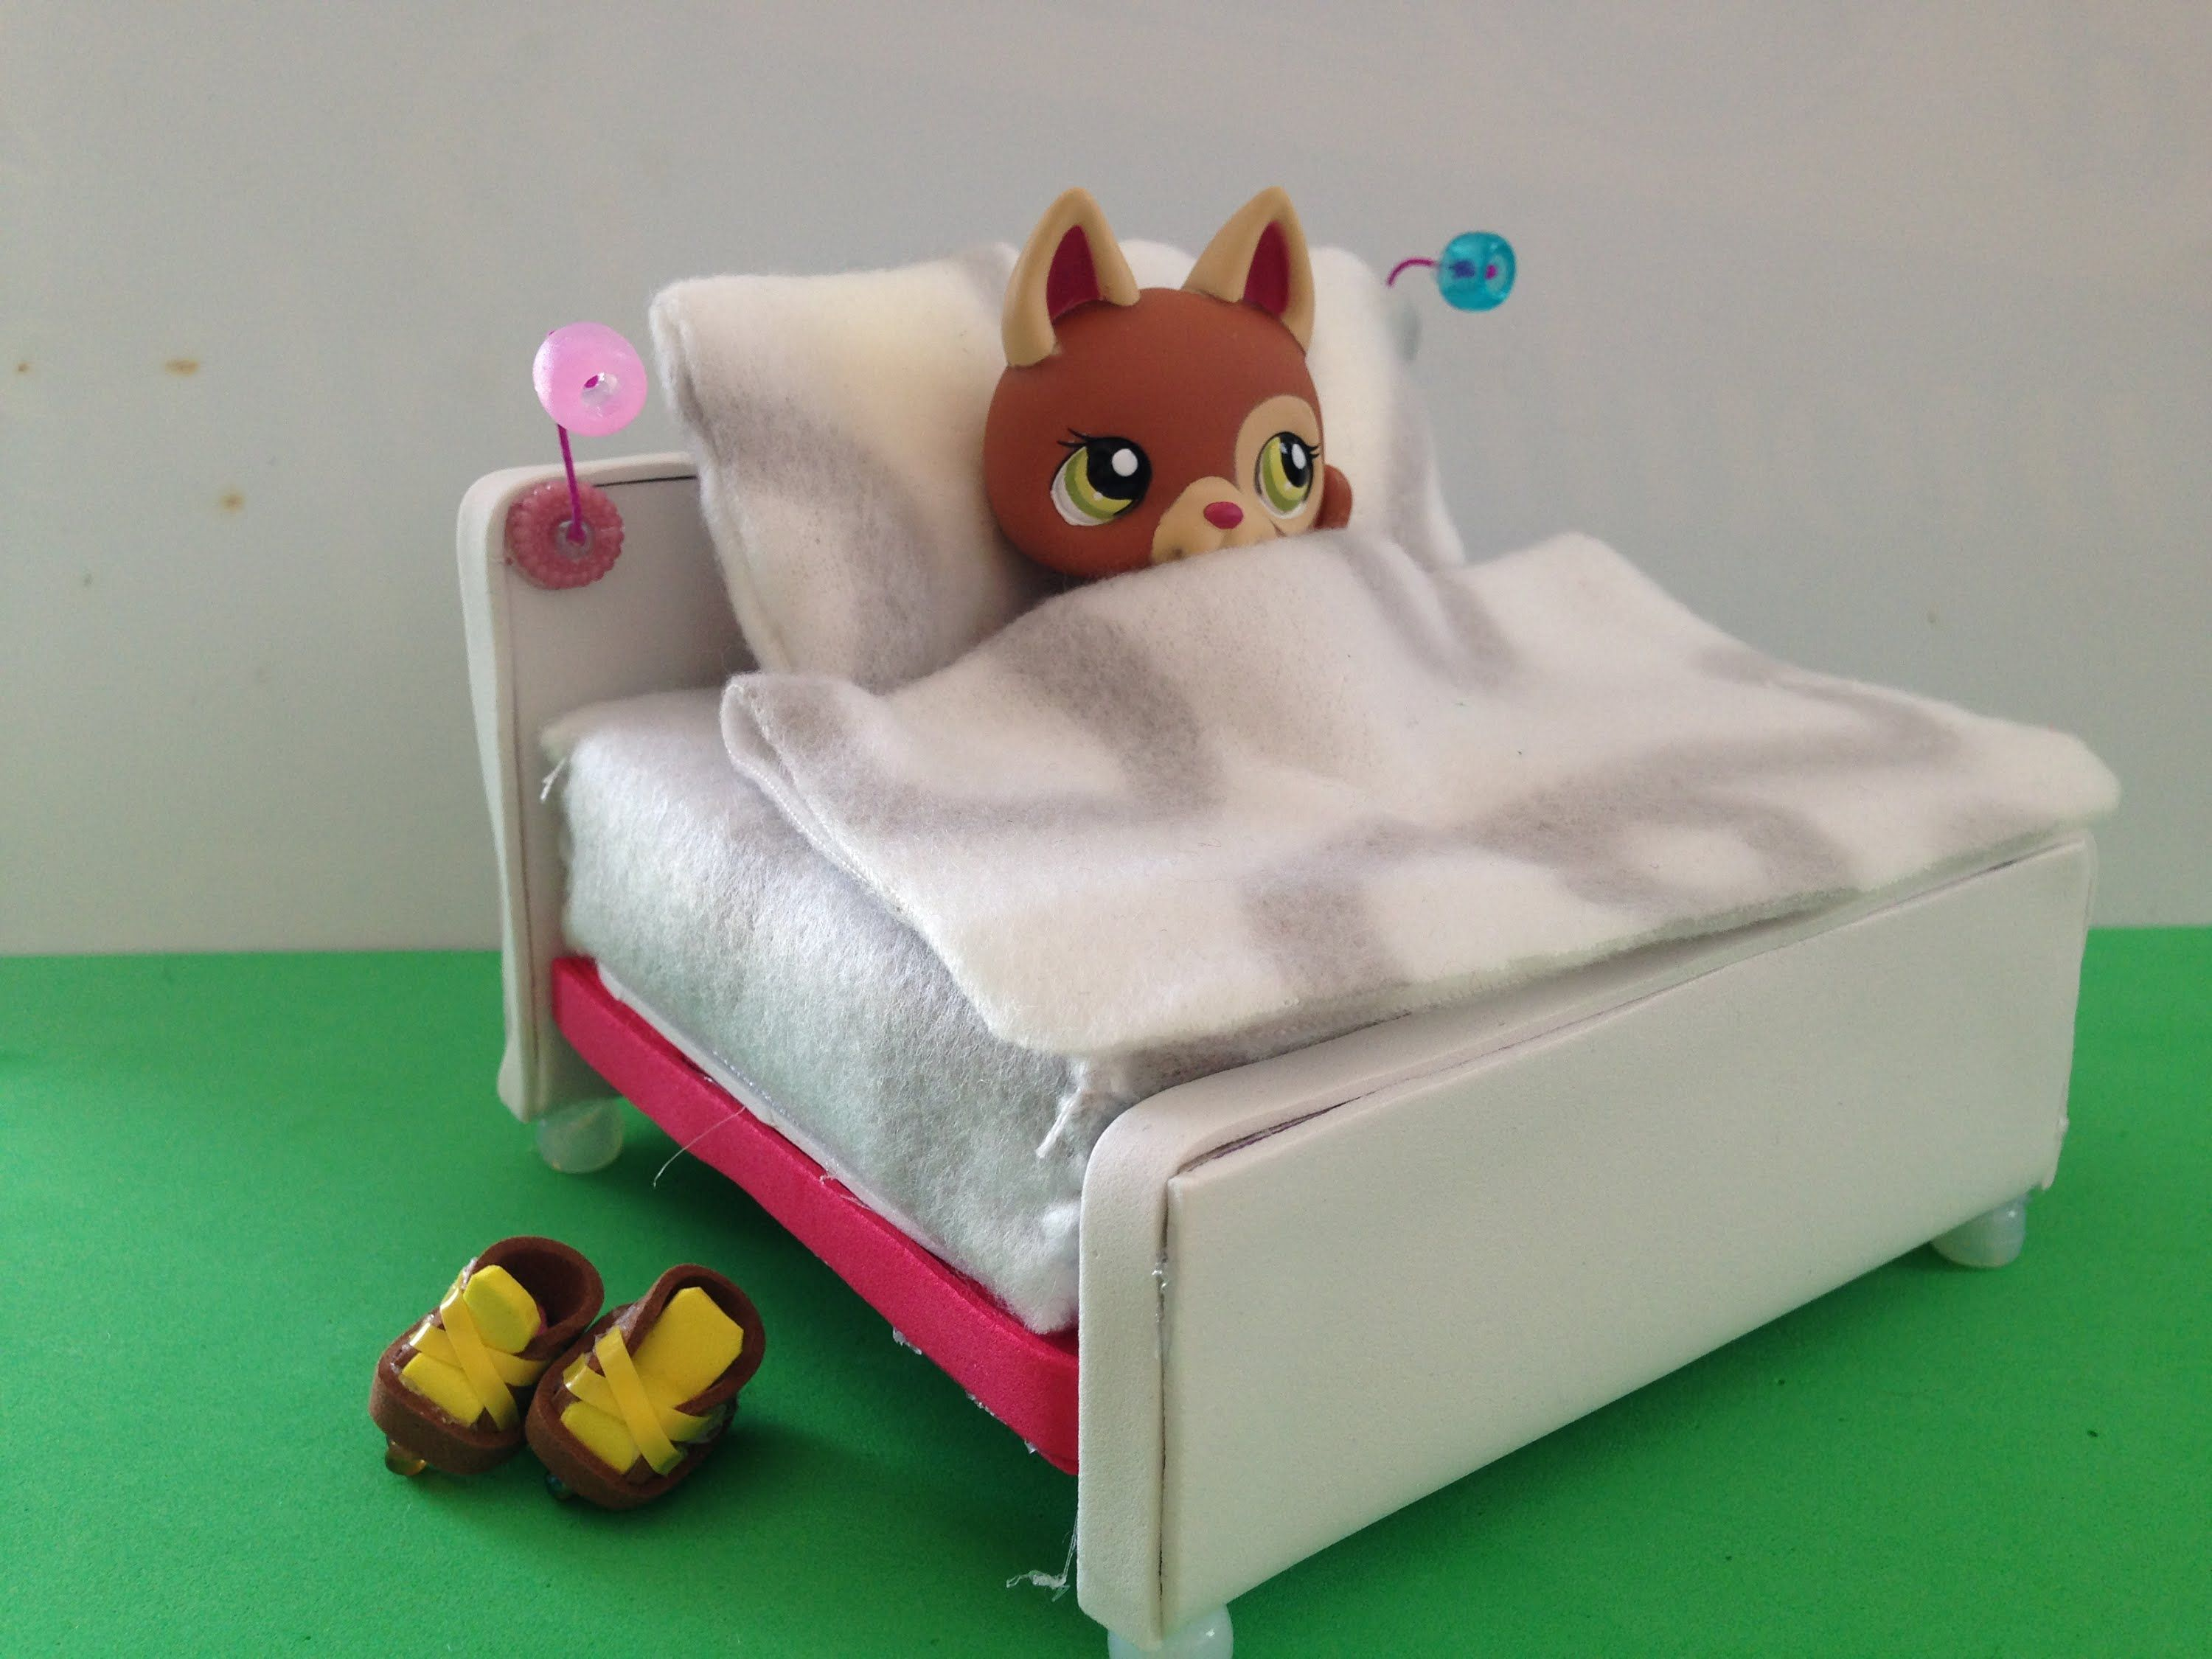 How To Make A Lps Bed Lps Accessories Lps Crafts Lps Diy Accessories Lps Accessories